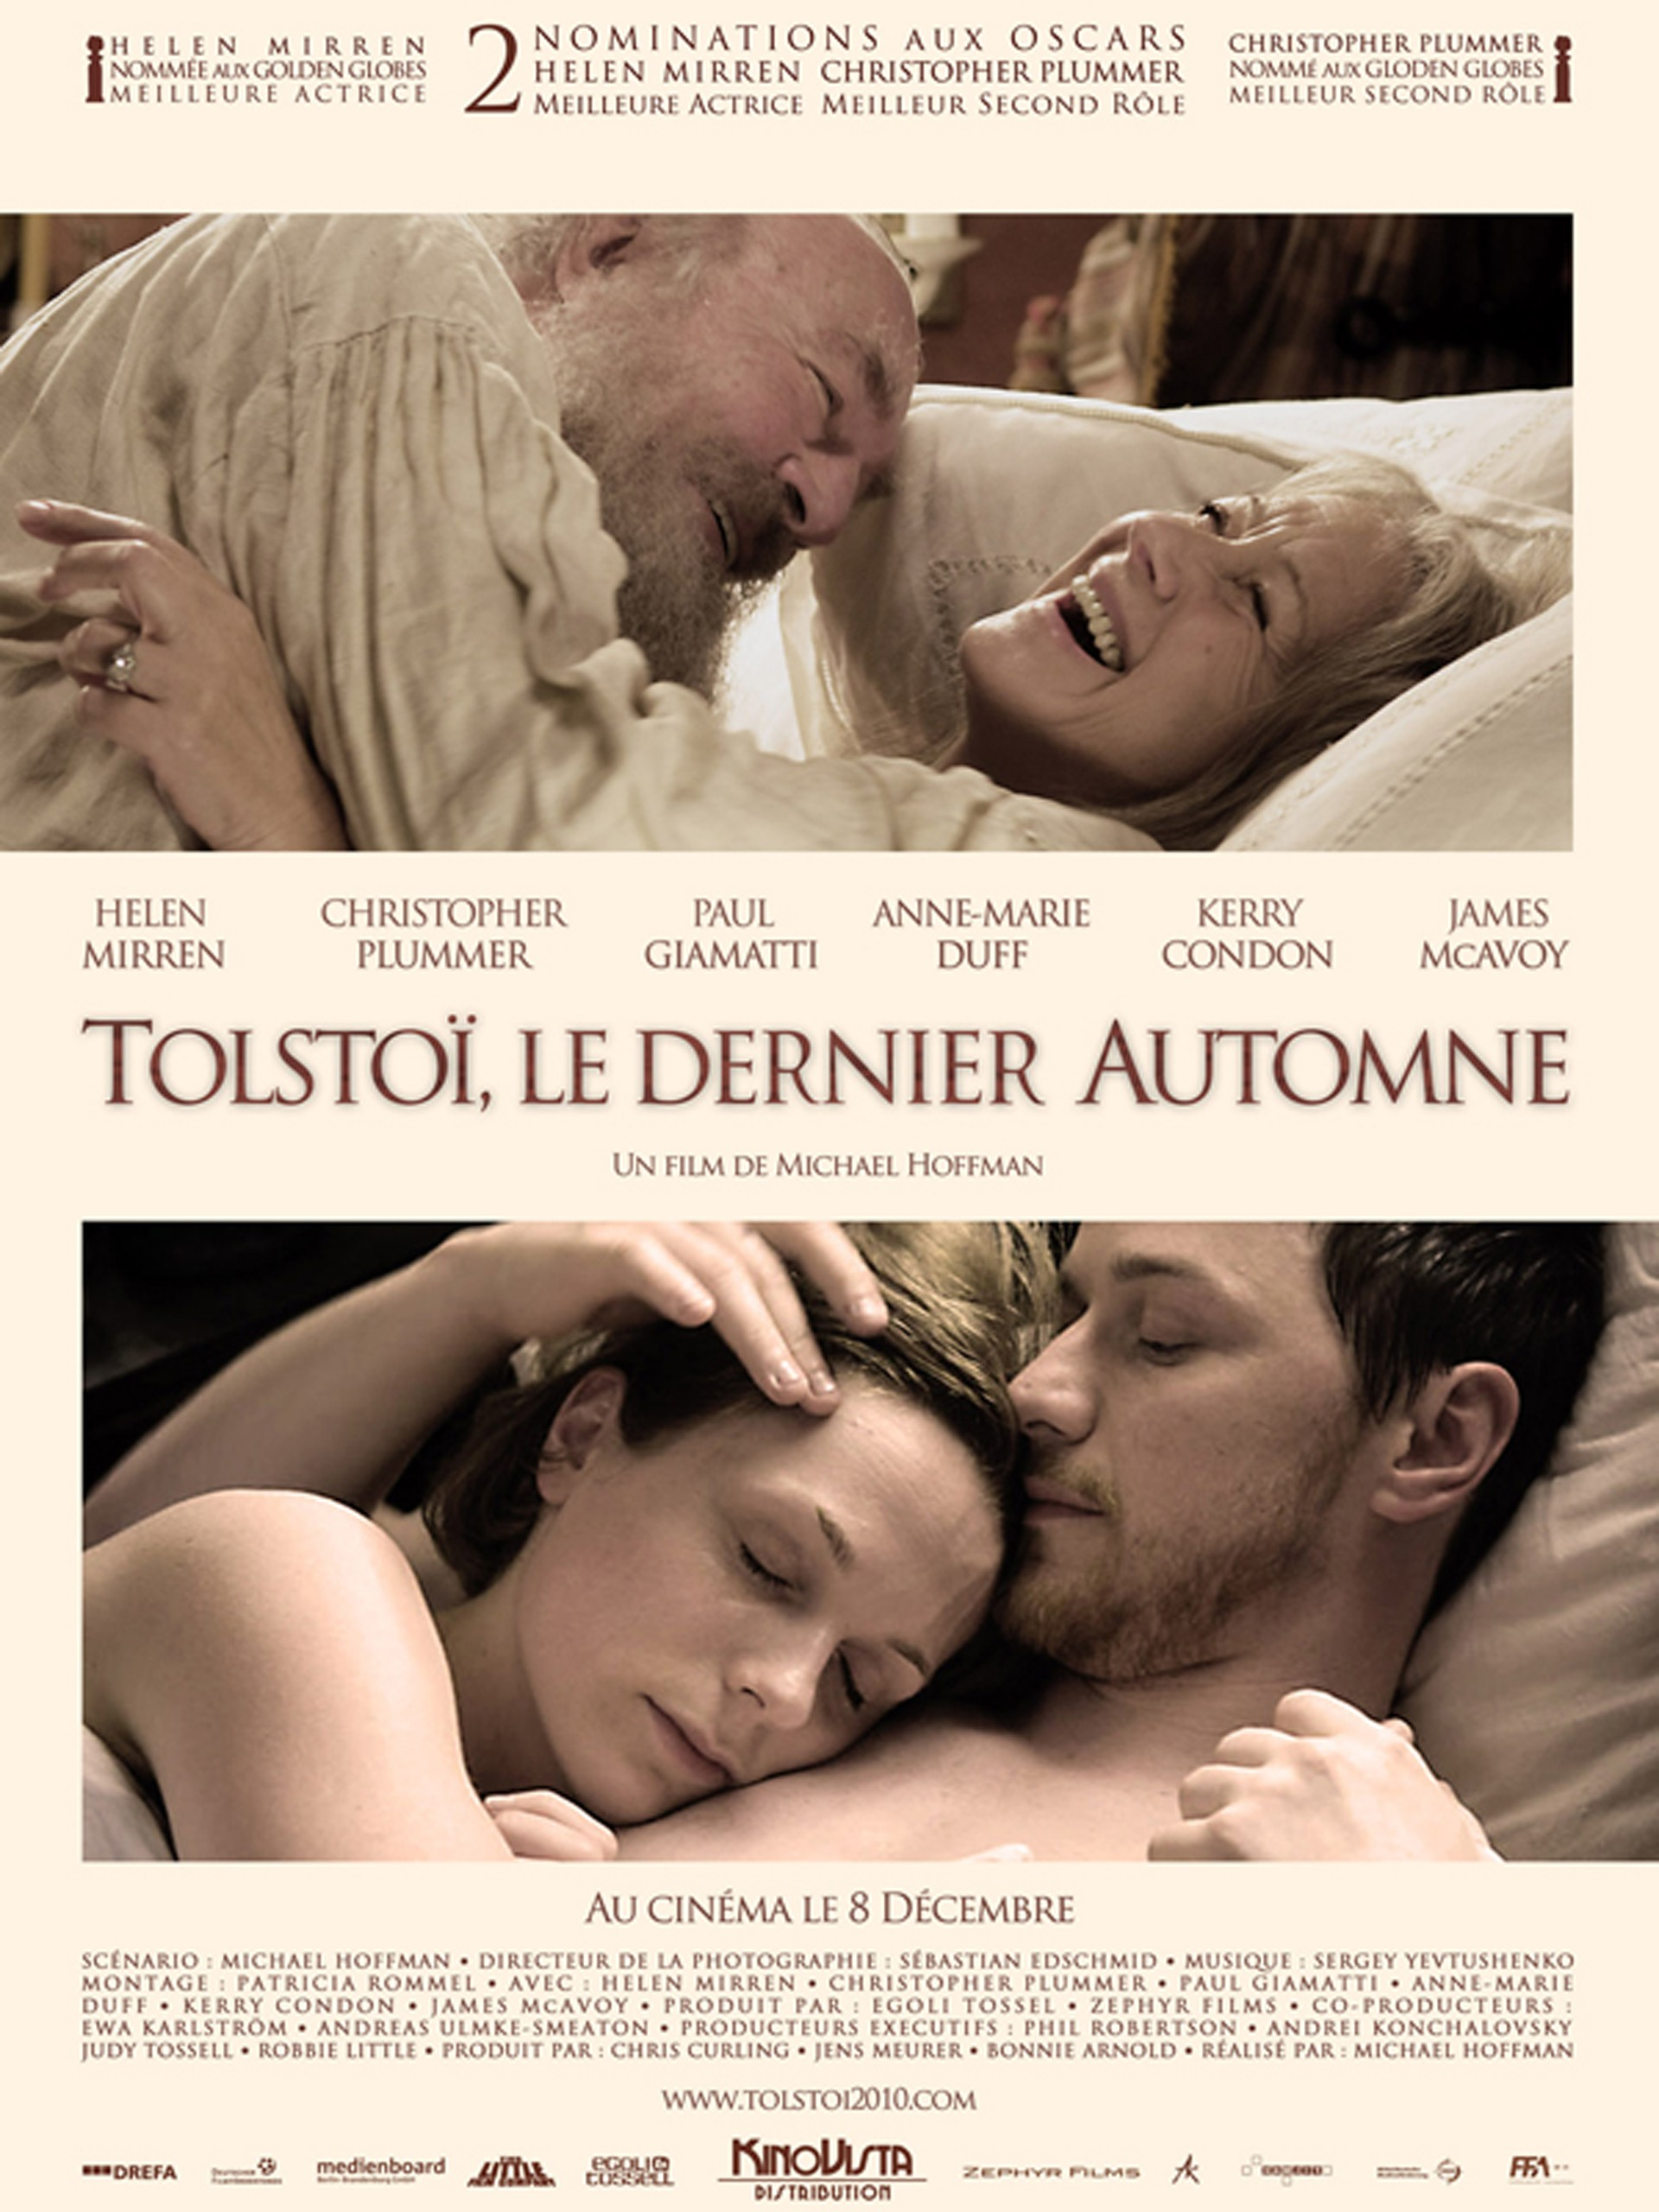 [MULTI] Tolsto le dernier automne [DVDRiP]